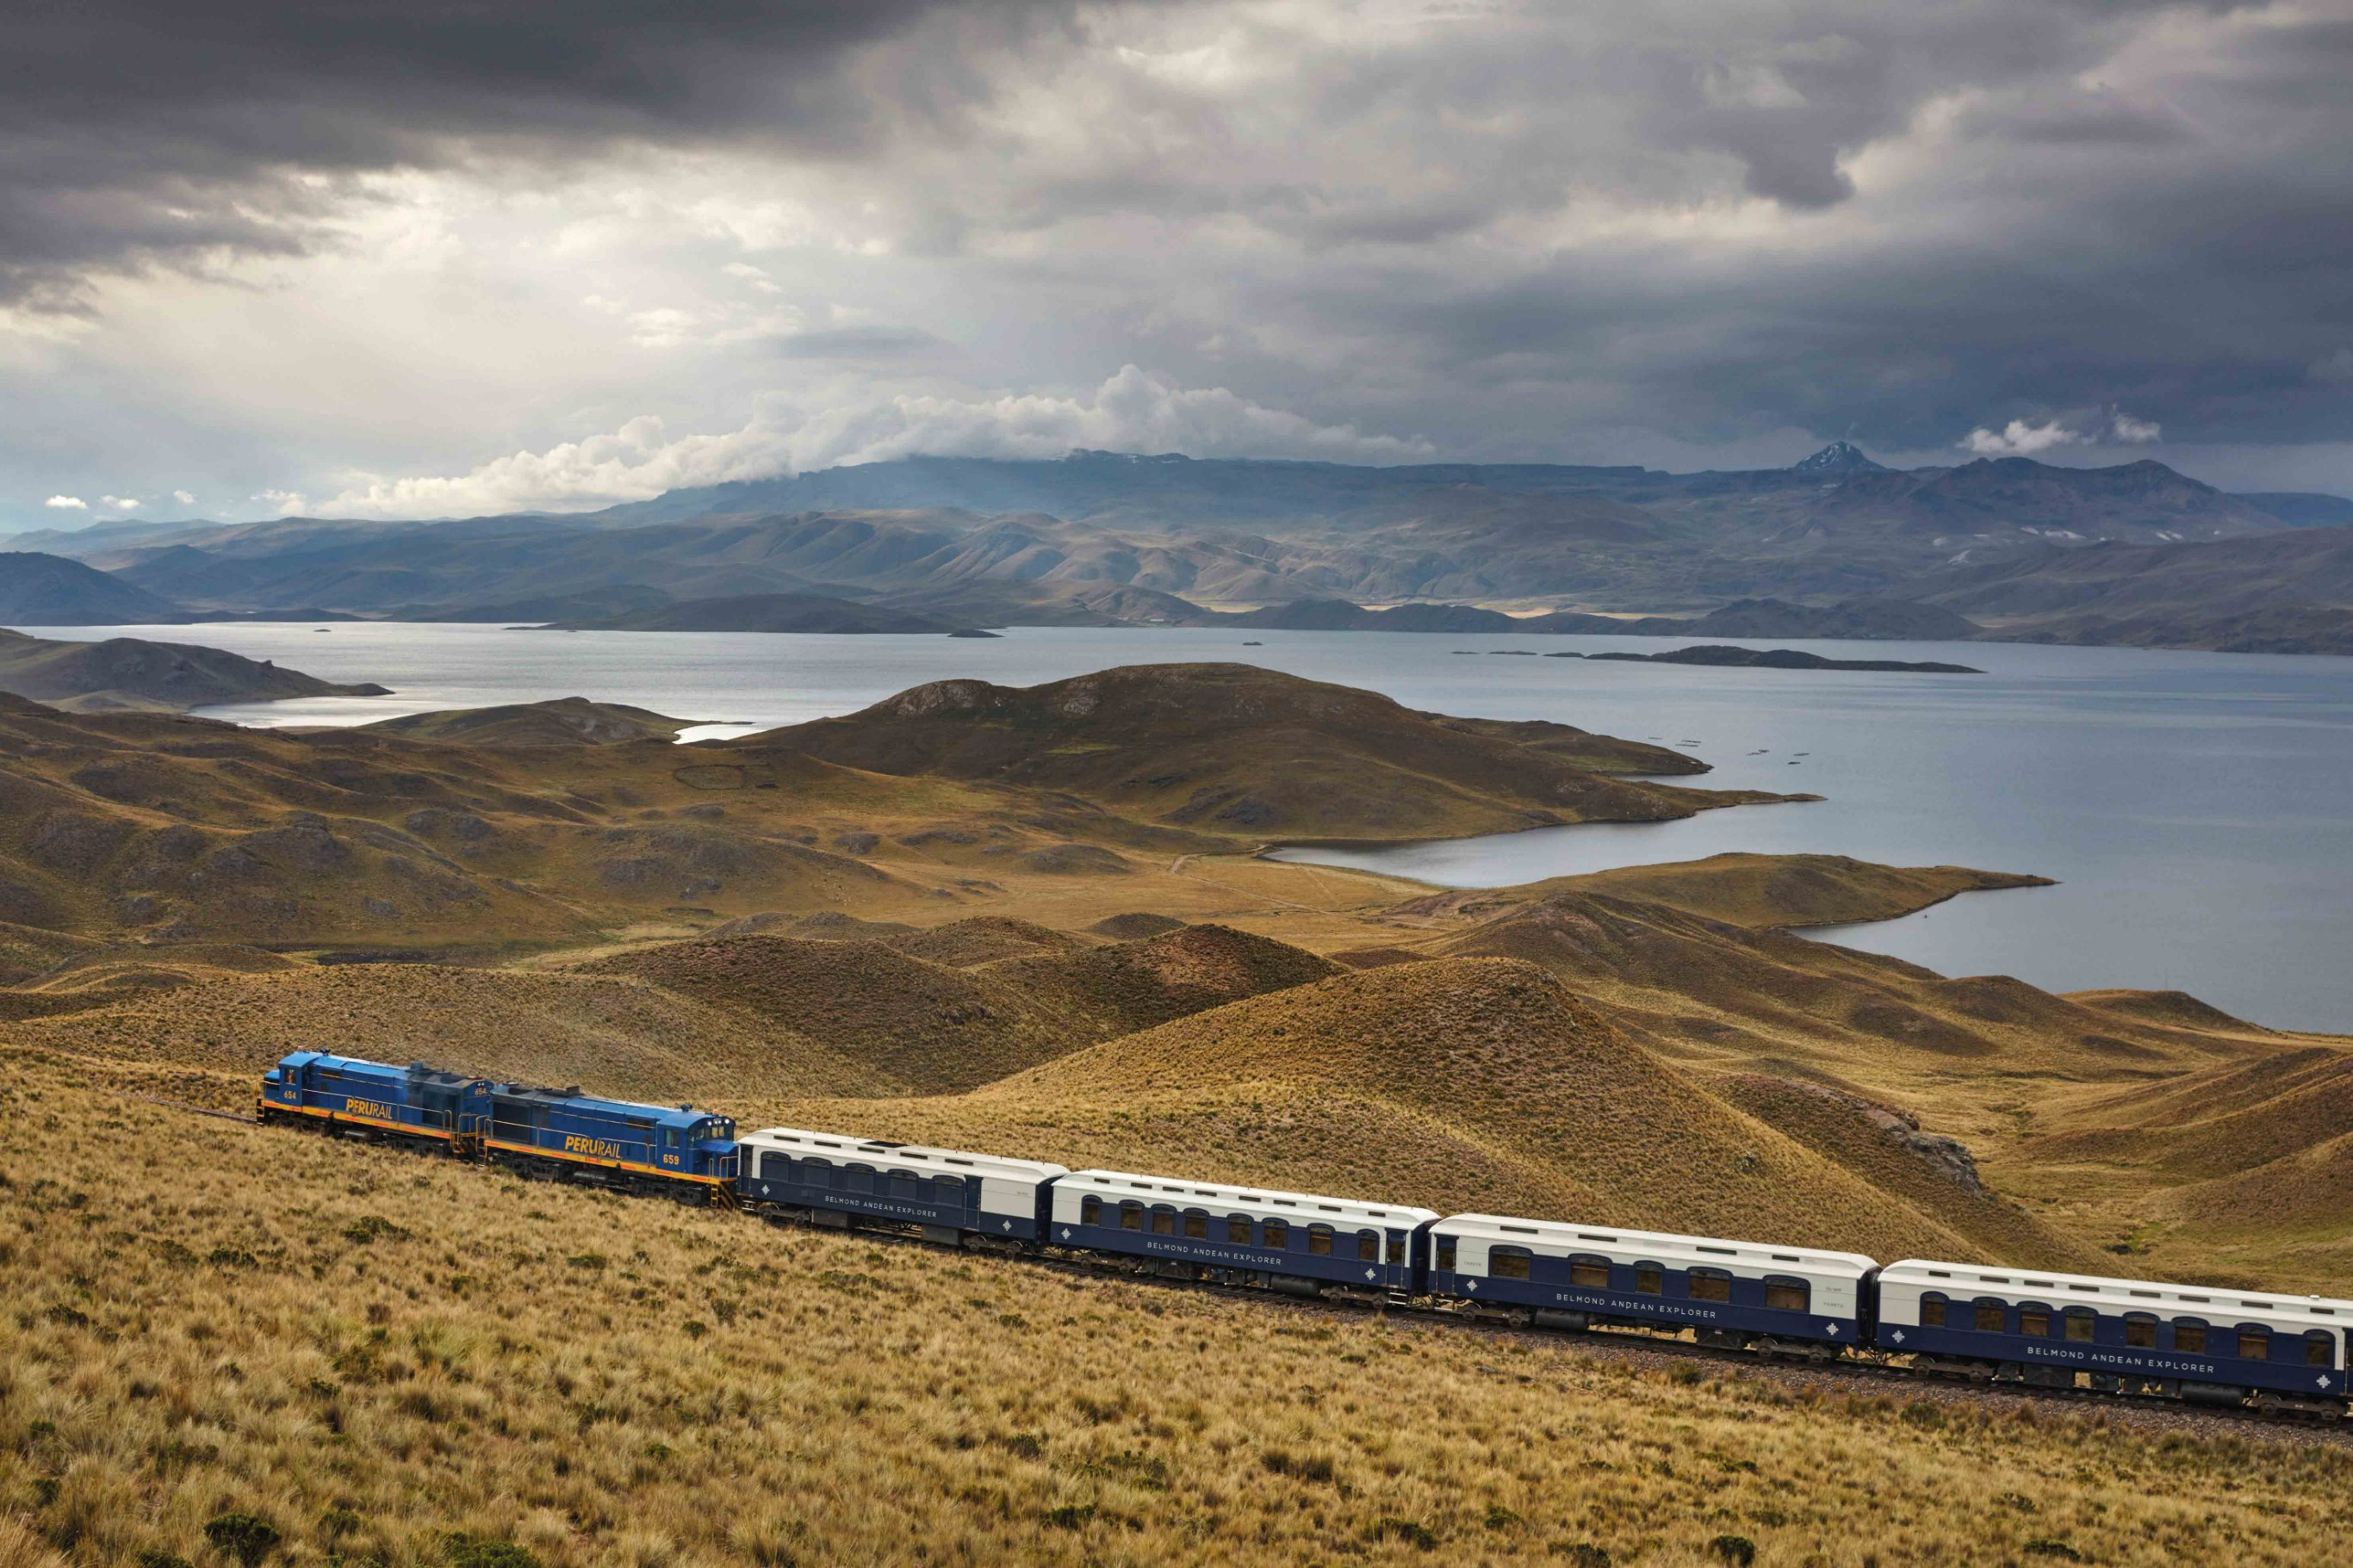 9-Day Journey Through the Andes - Peru Itinerary